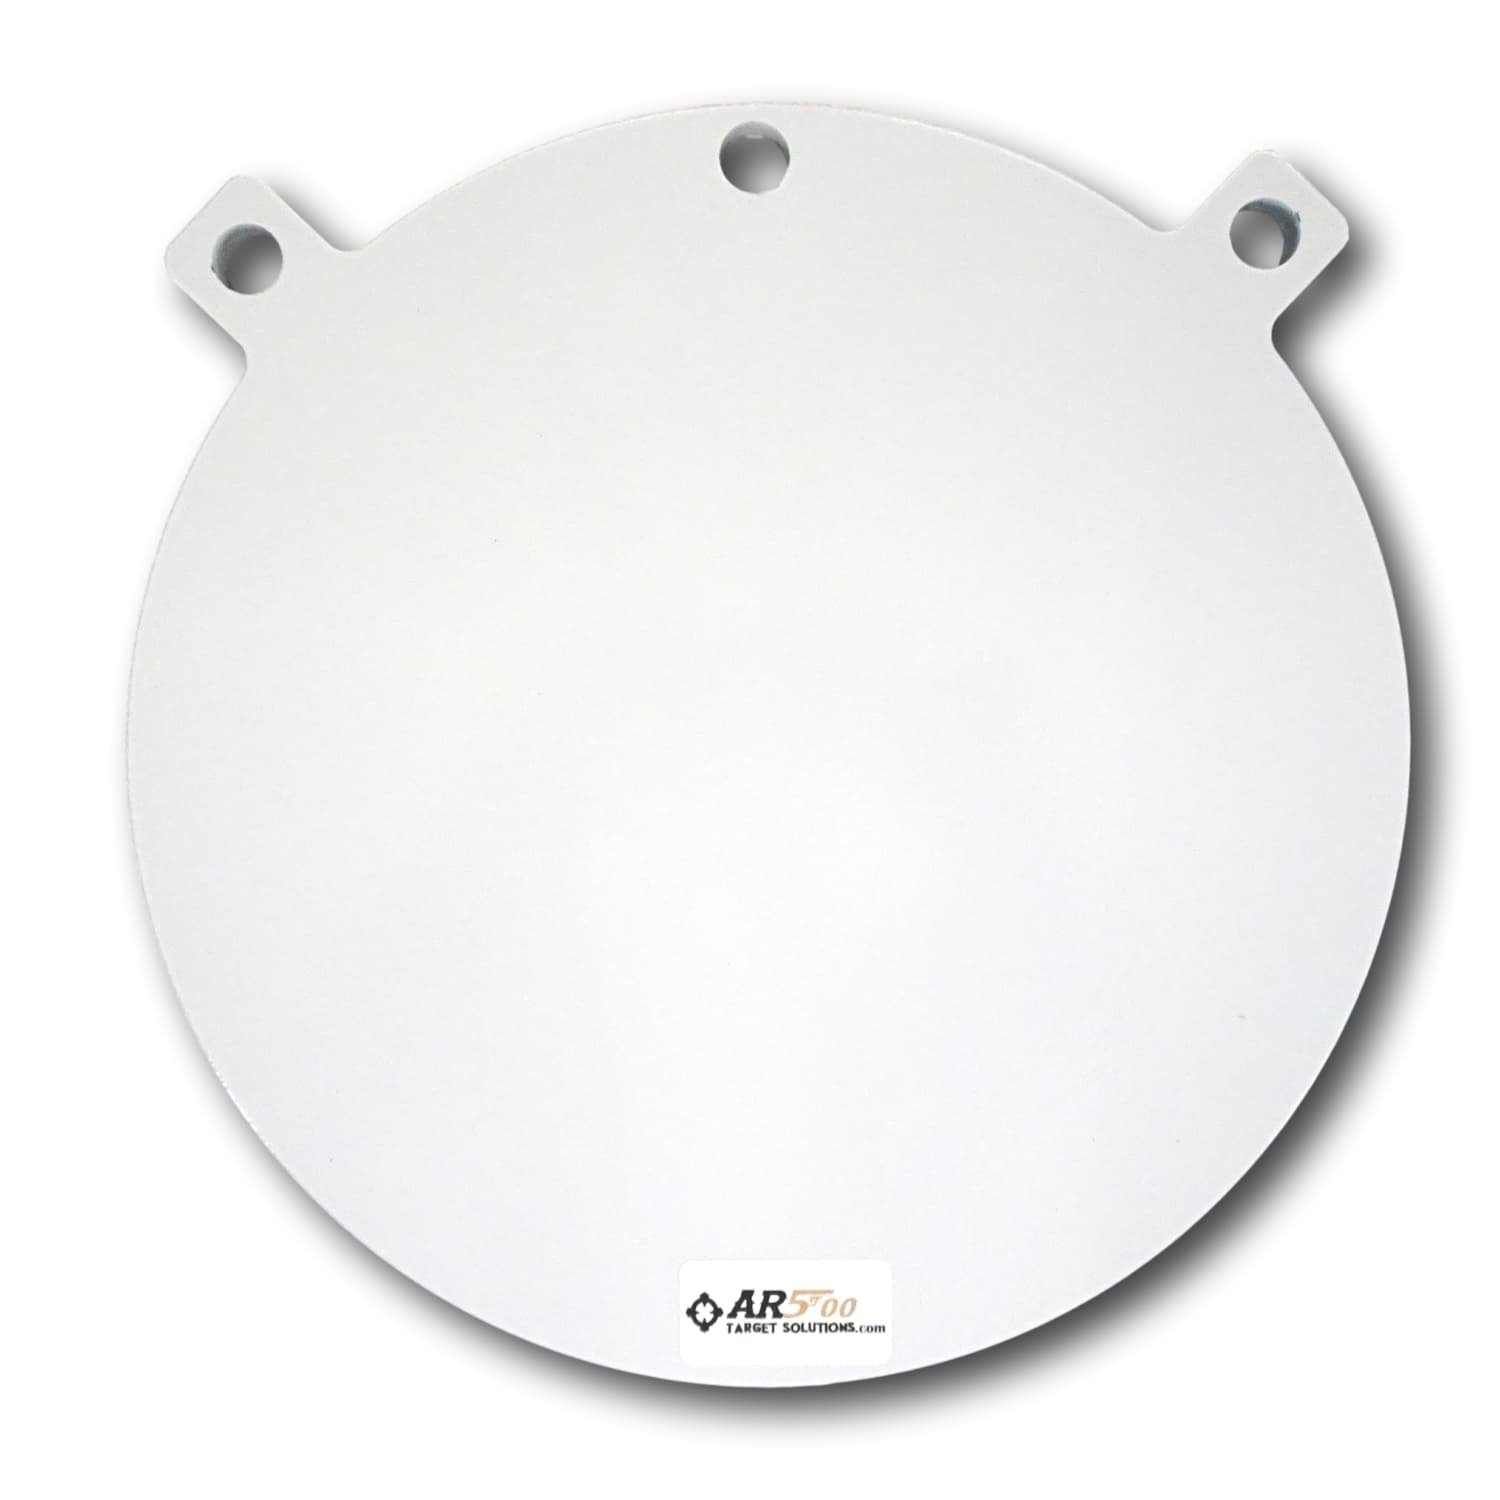 Ar500 Target Solutions- Quality 3/8, 1/2 Thick AR500 Steel Targets- Laser Cut Powder Coated Made in USA (12'', 3/8)